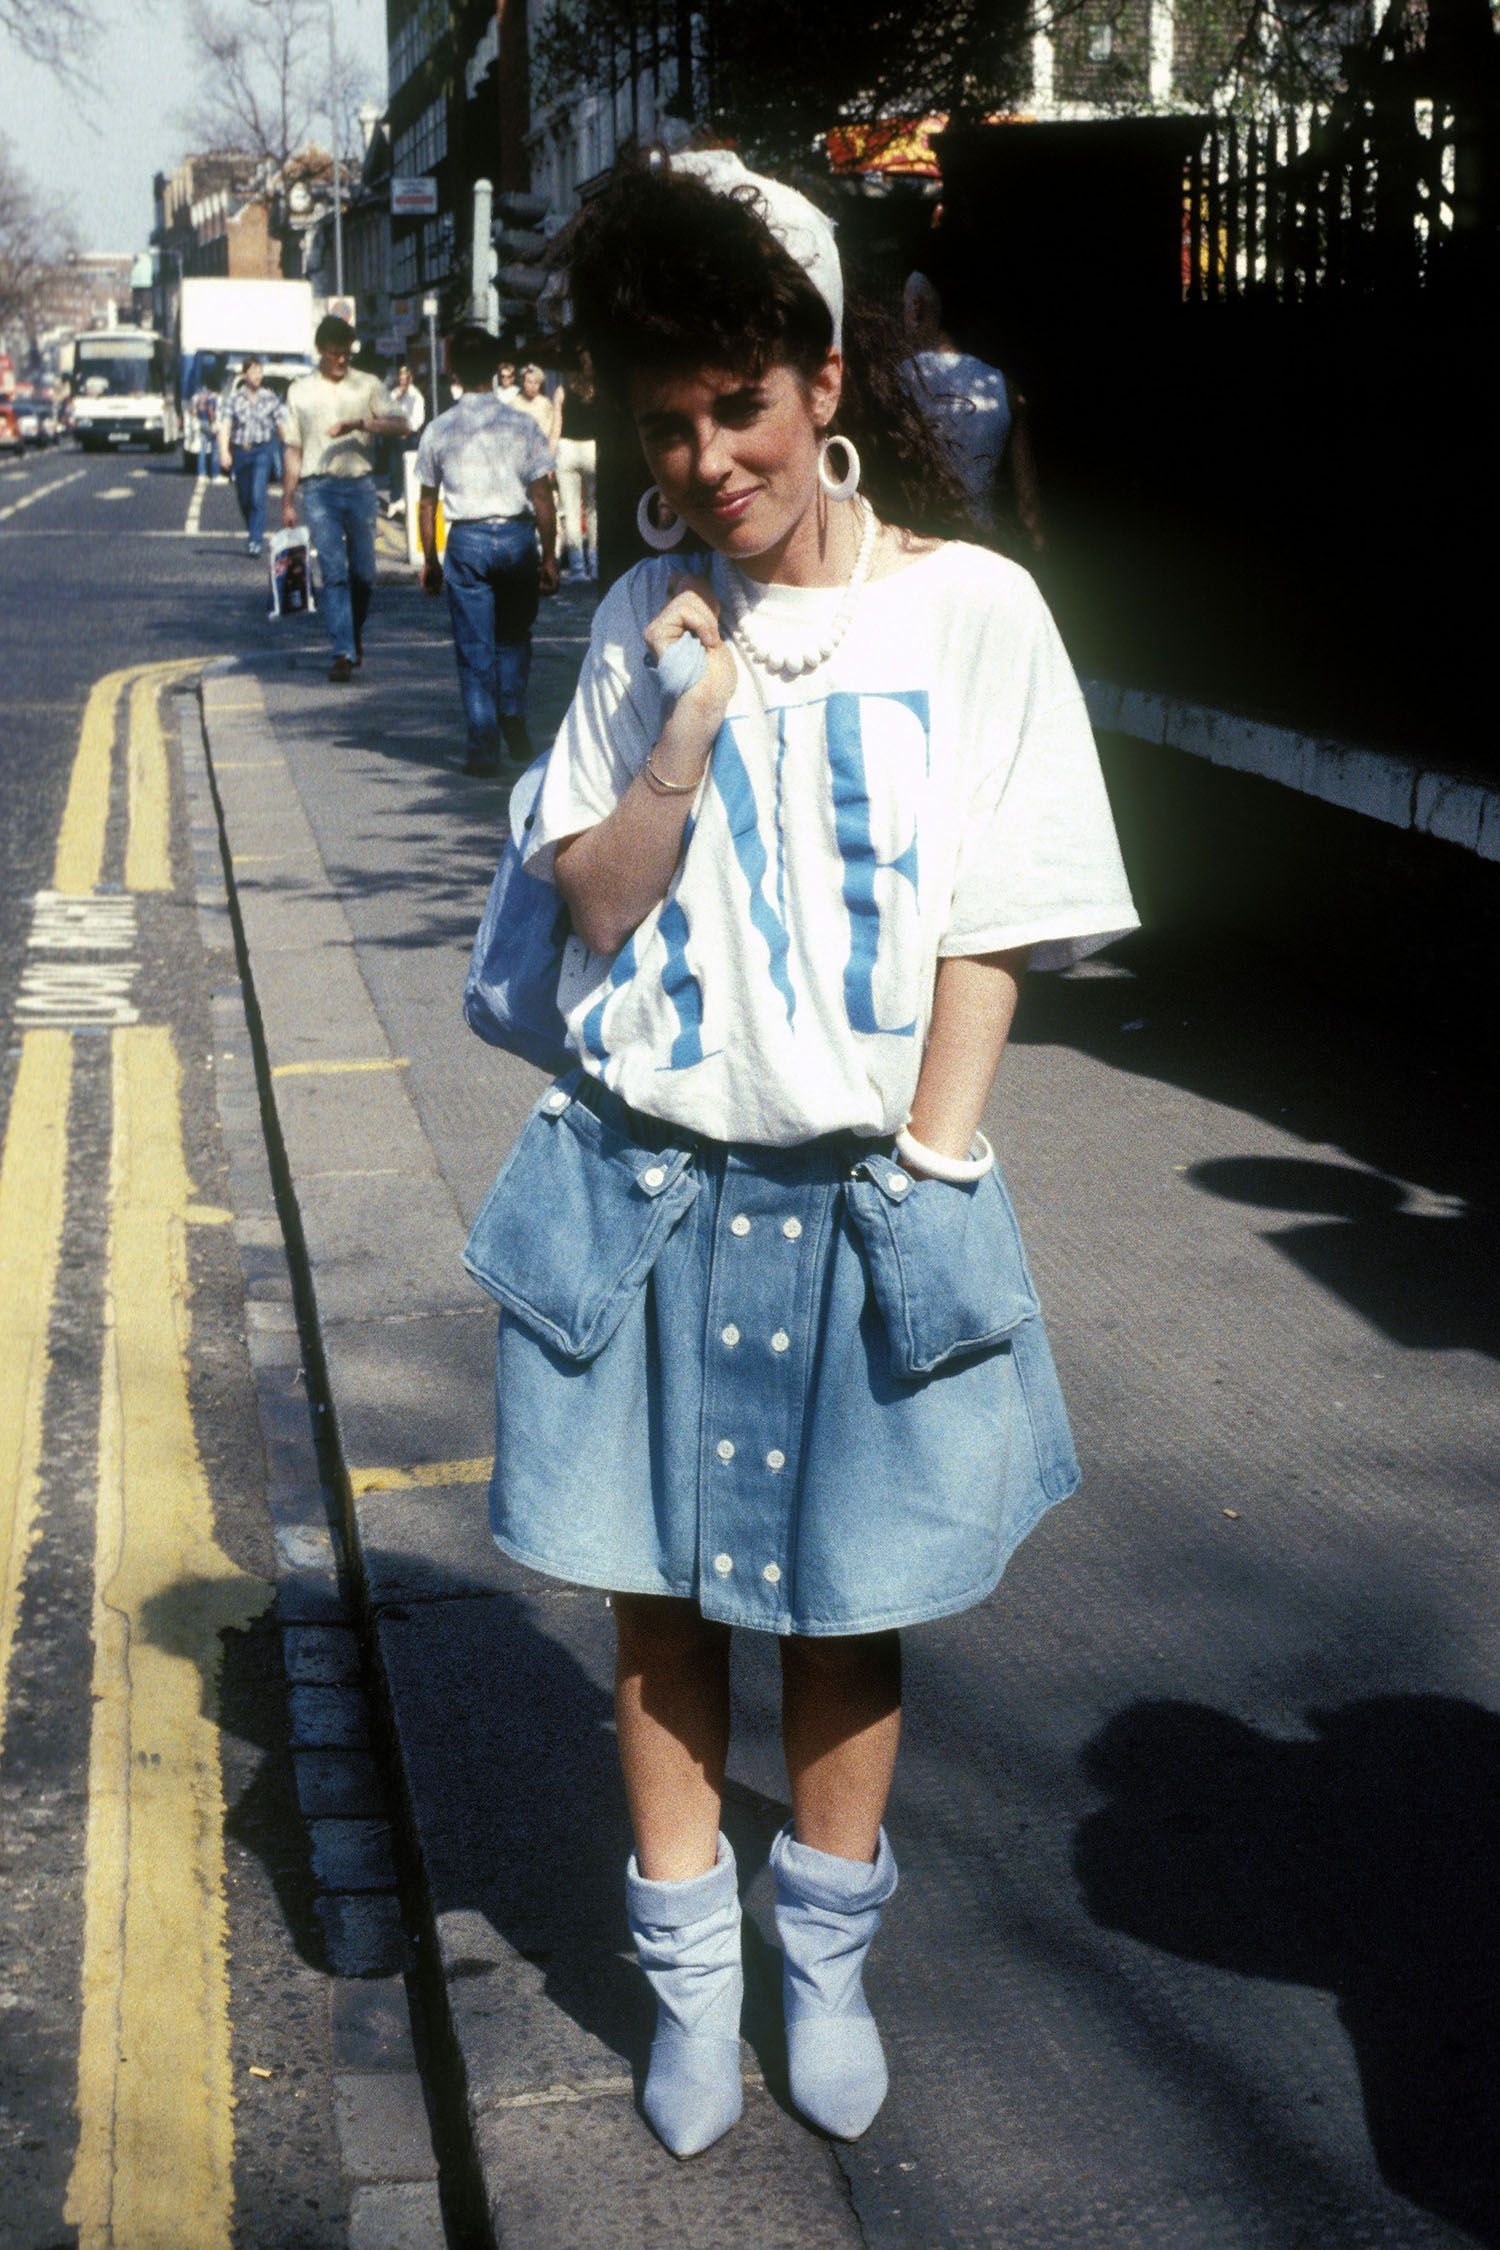 The best 1980s fashion moments to relive in photos 80s Fashion style in 80 s